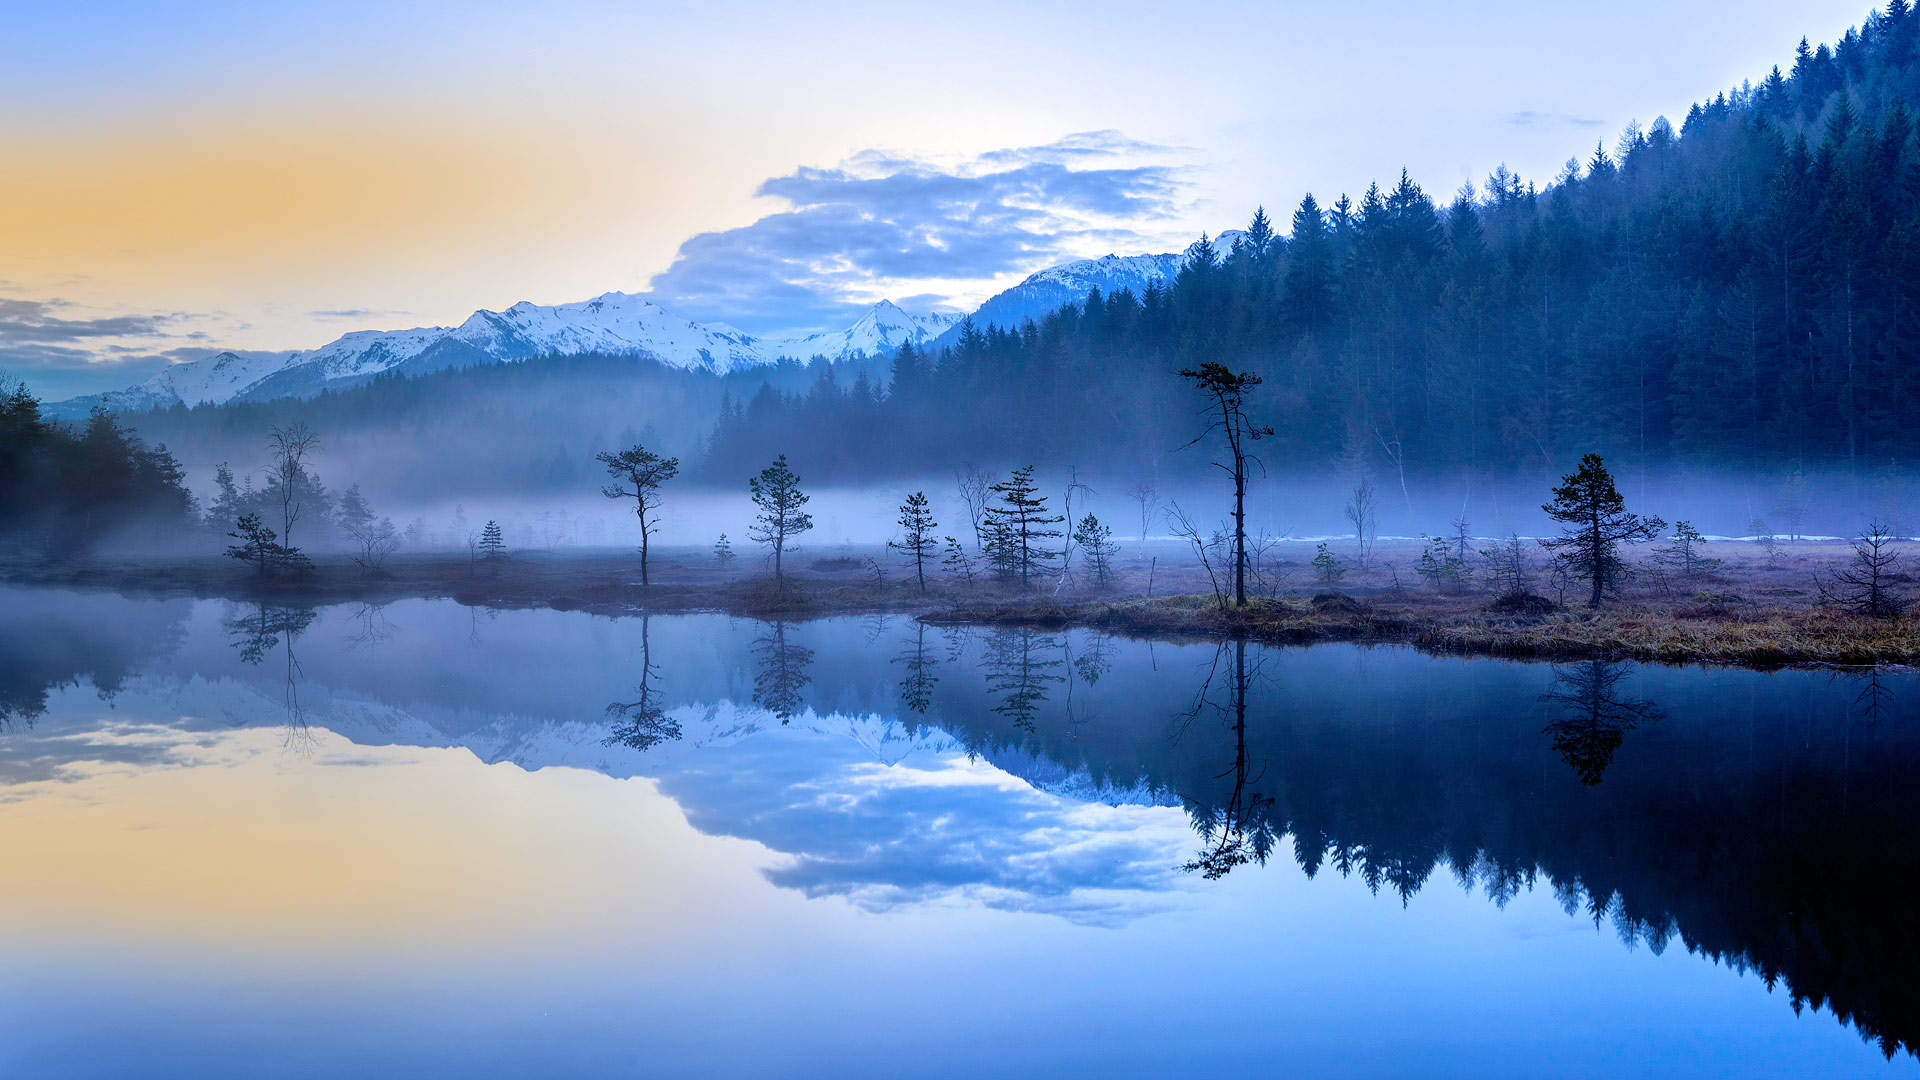 The misty bogs of Pian Gembro Regional Reserve near Aprica, Italy (© Robert Harding World Imagery/Offset)